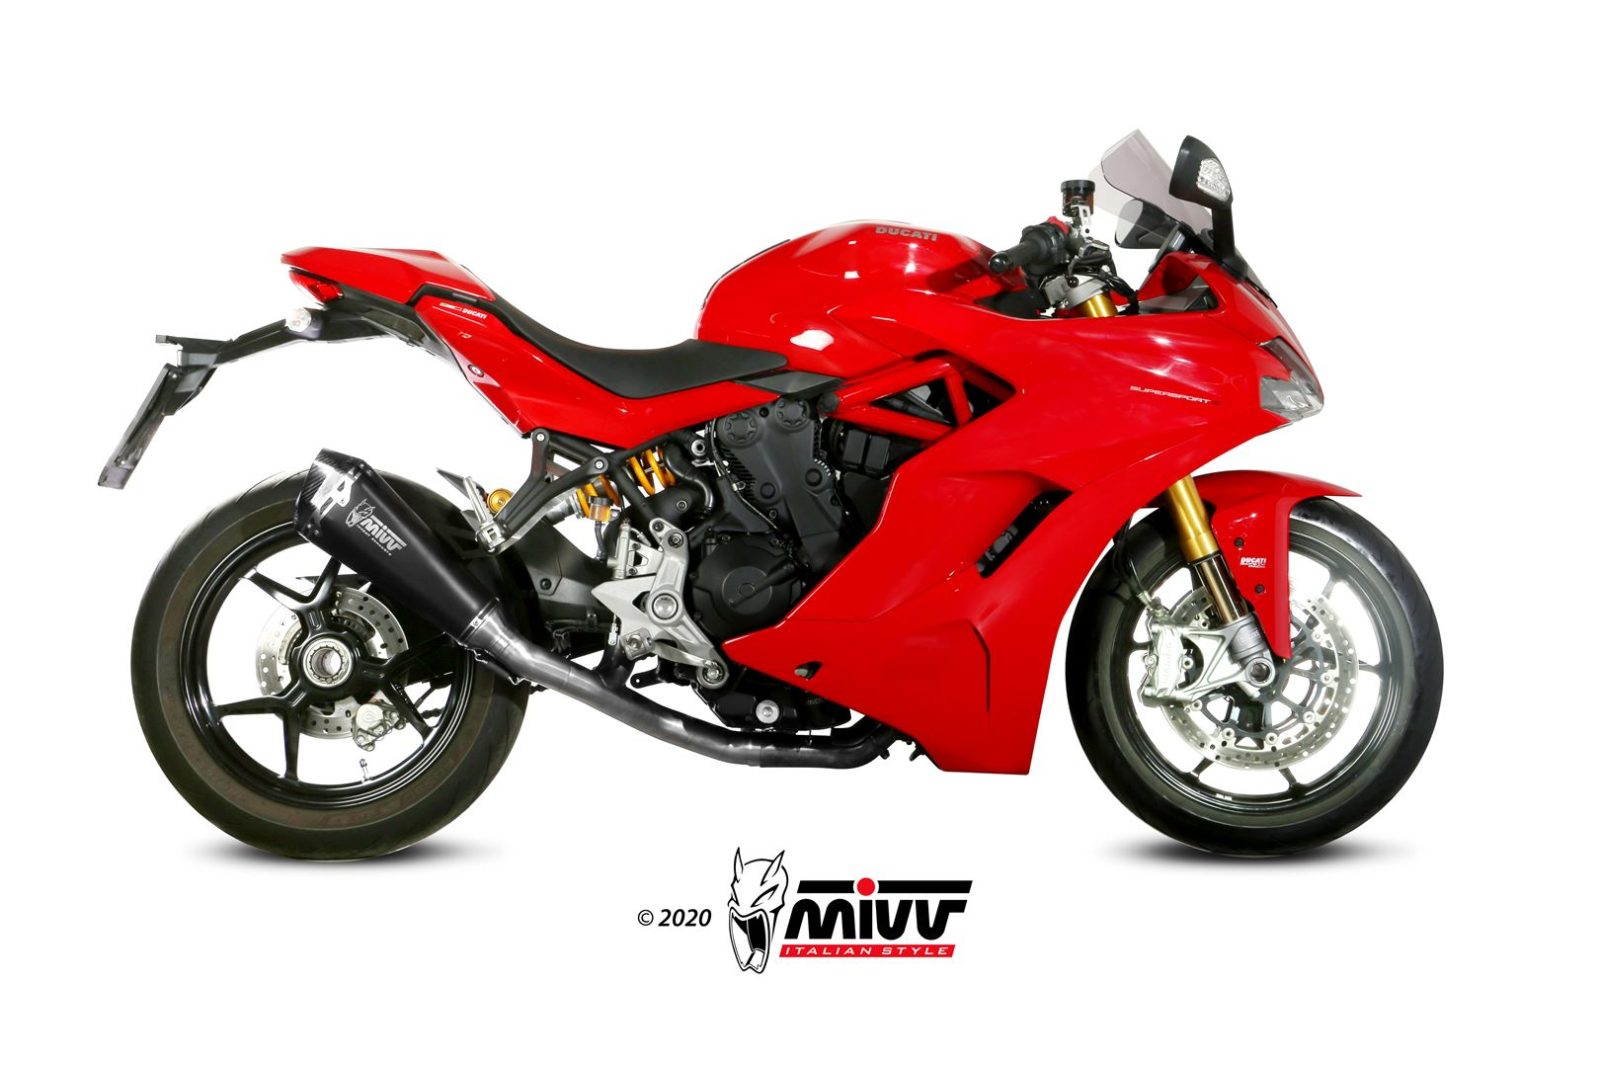 Ducati_Supersport939_17-_73D044LDRB_$01